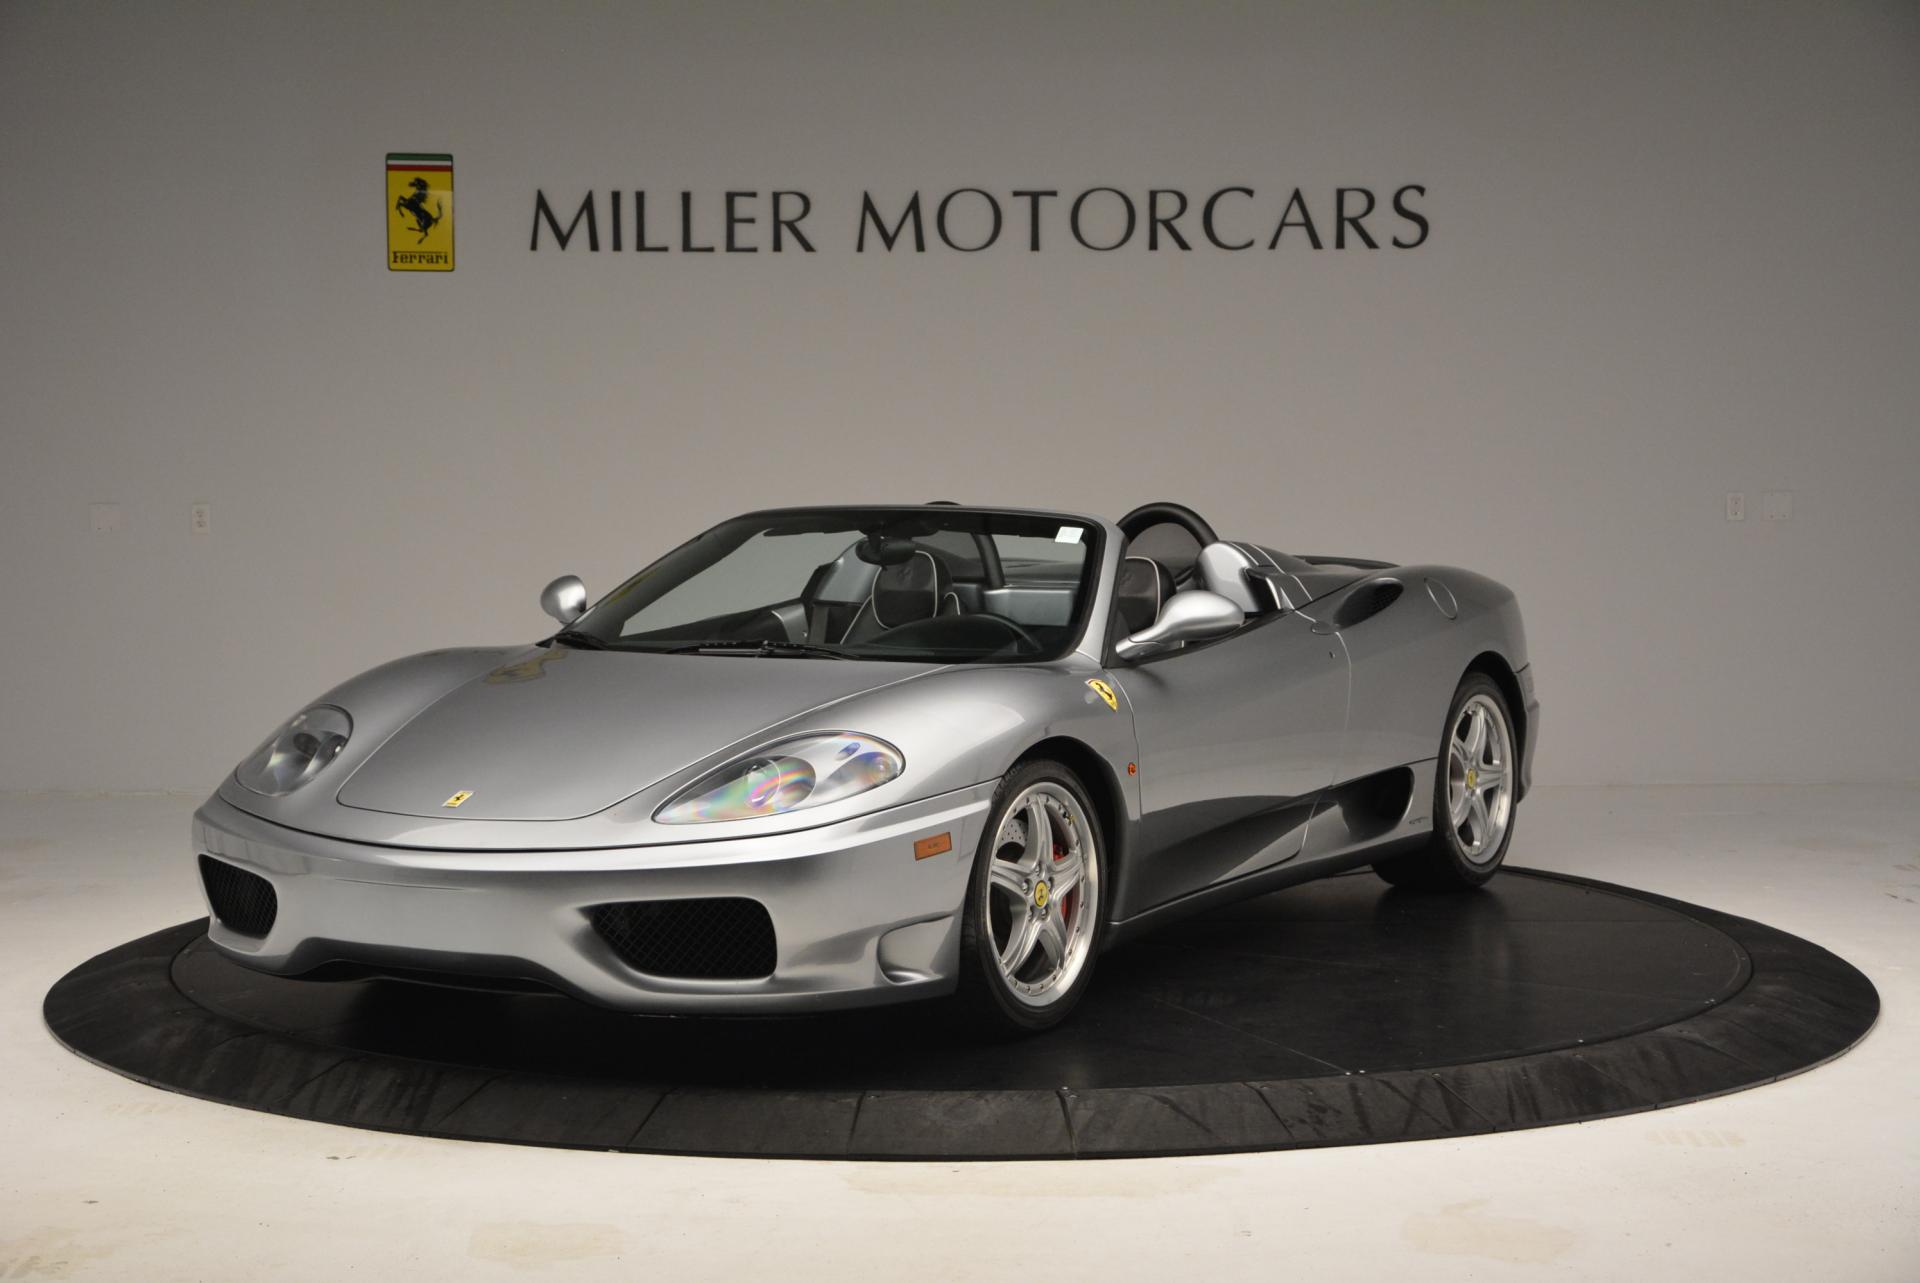 Used 2004 Ferrari 360 Spider 6-Speed Manual for sale Sold at Aston Martin of Greenwich in Greenwich CT 06830 1